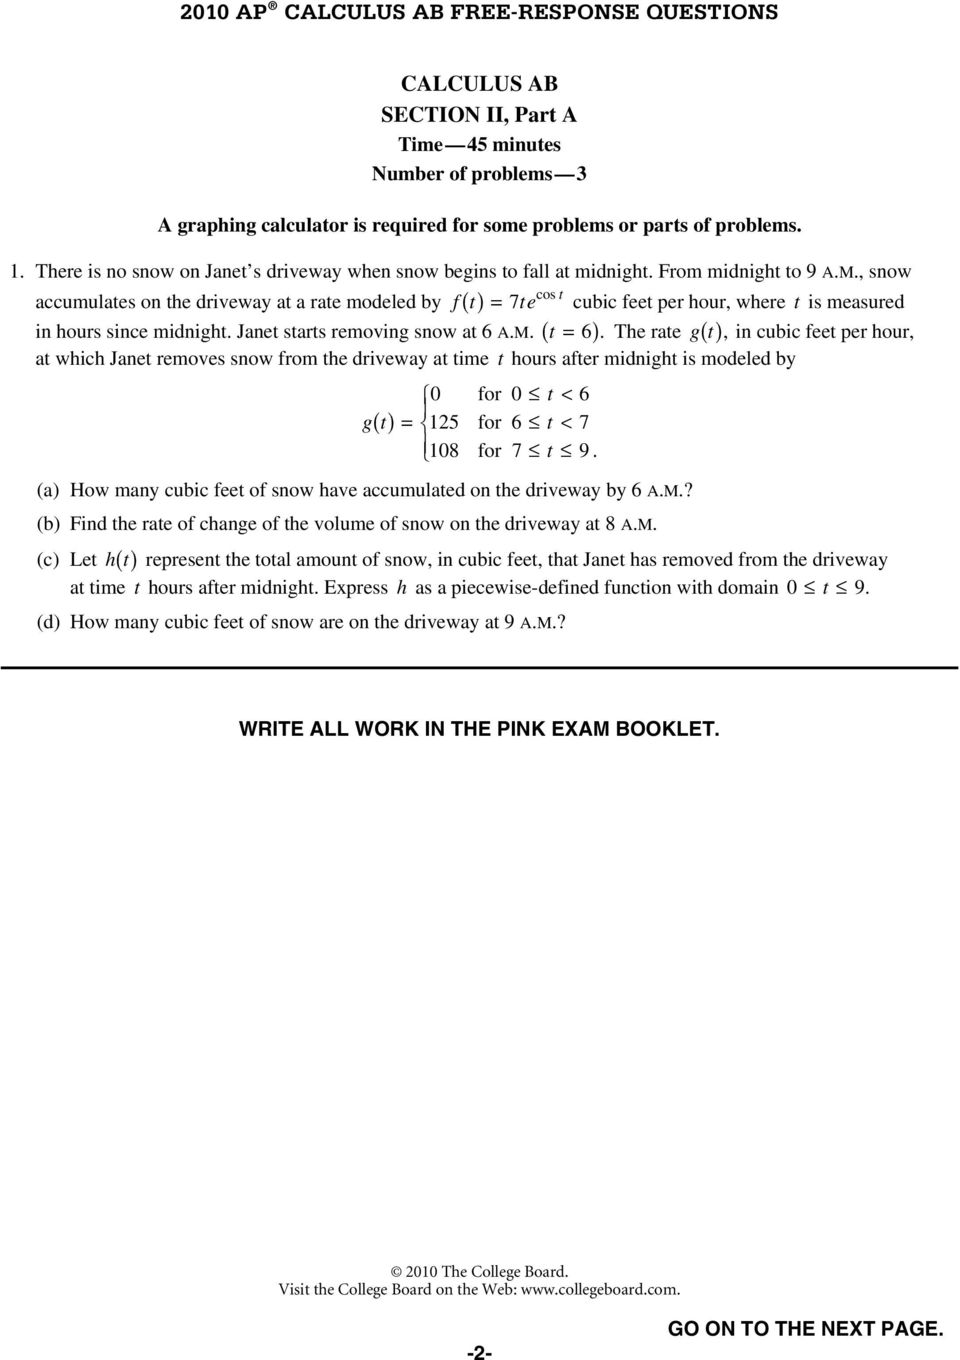 AP Calculus AB 2010 Free-Response Questions - PDF